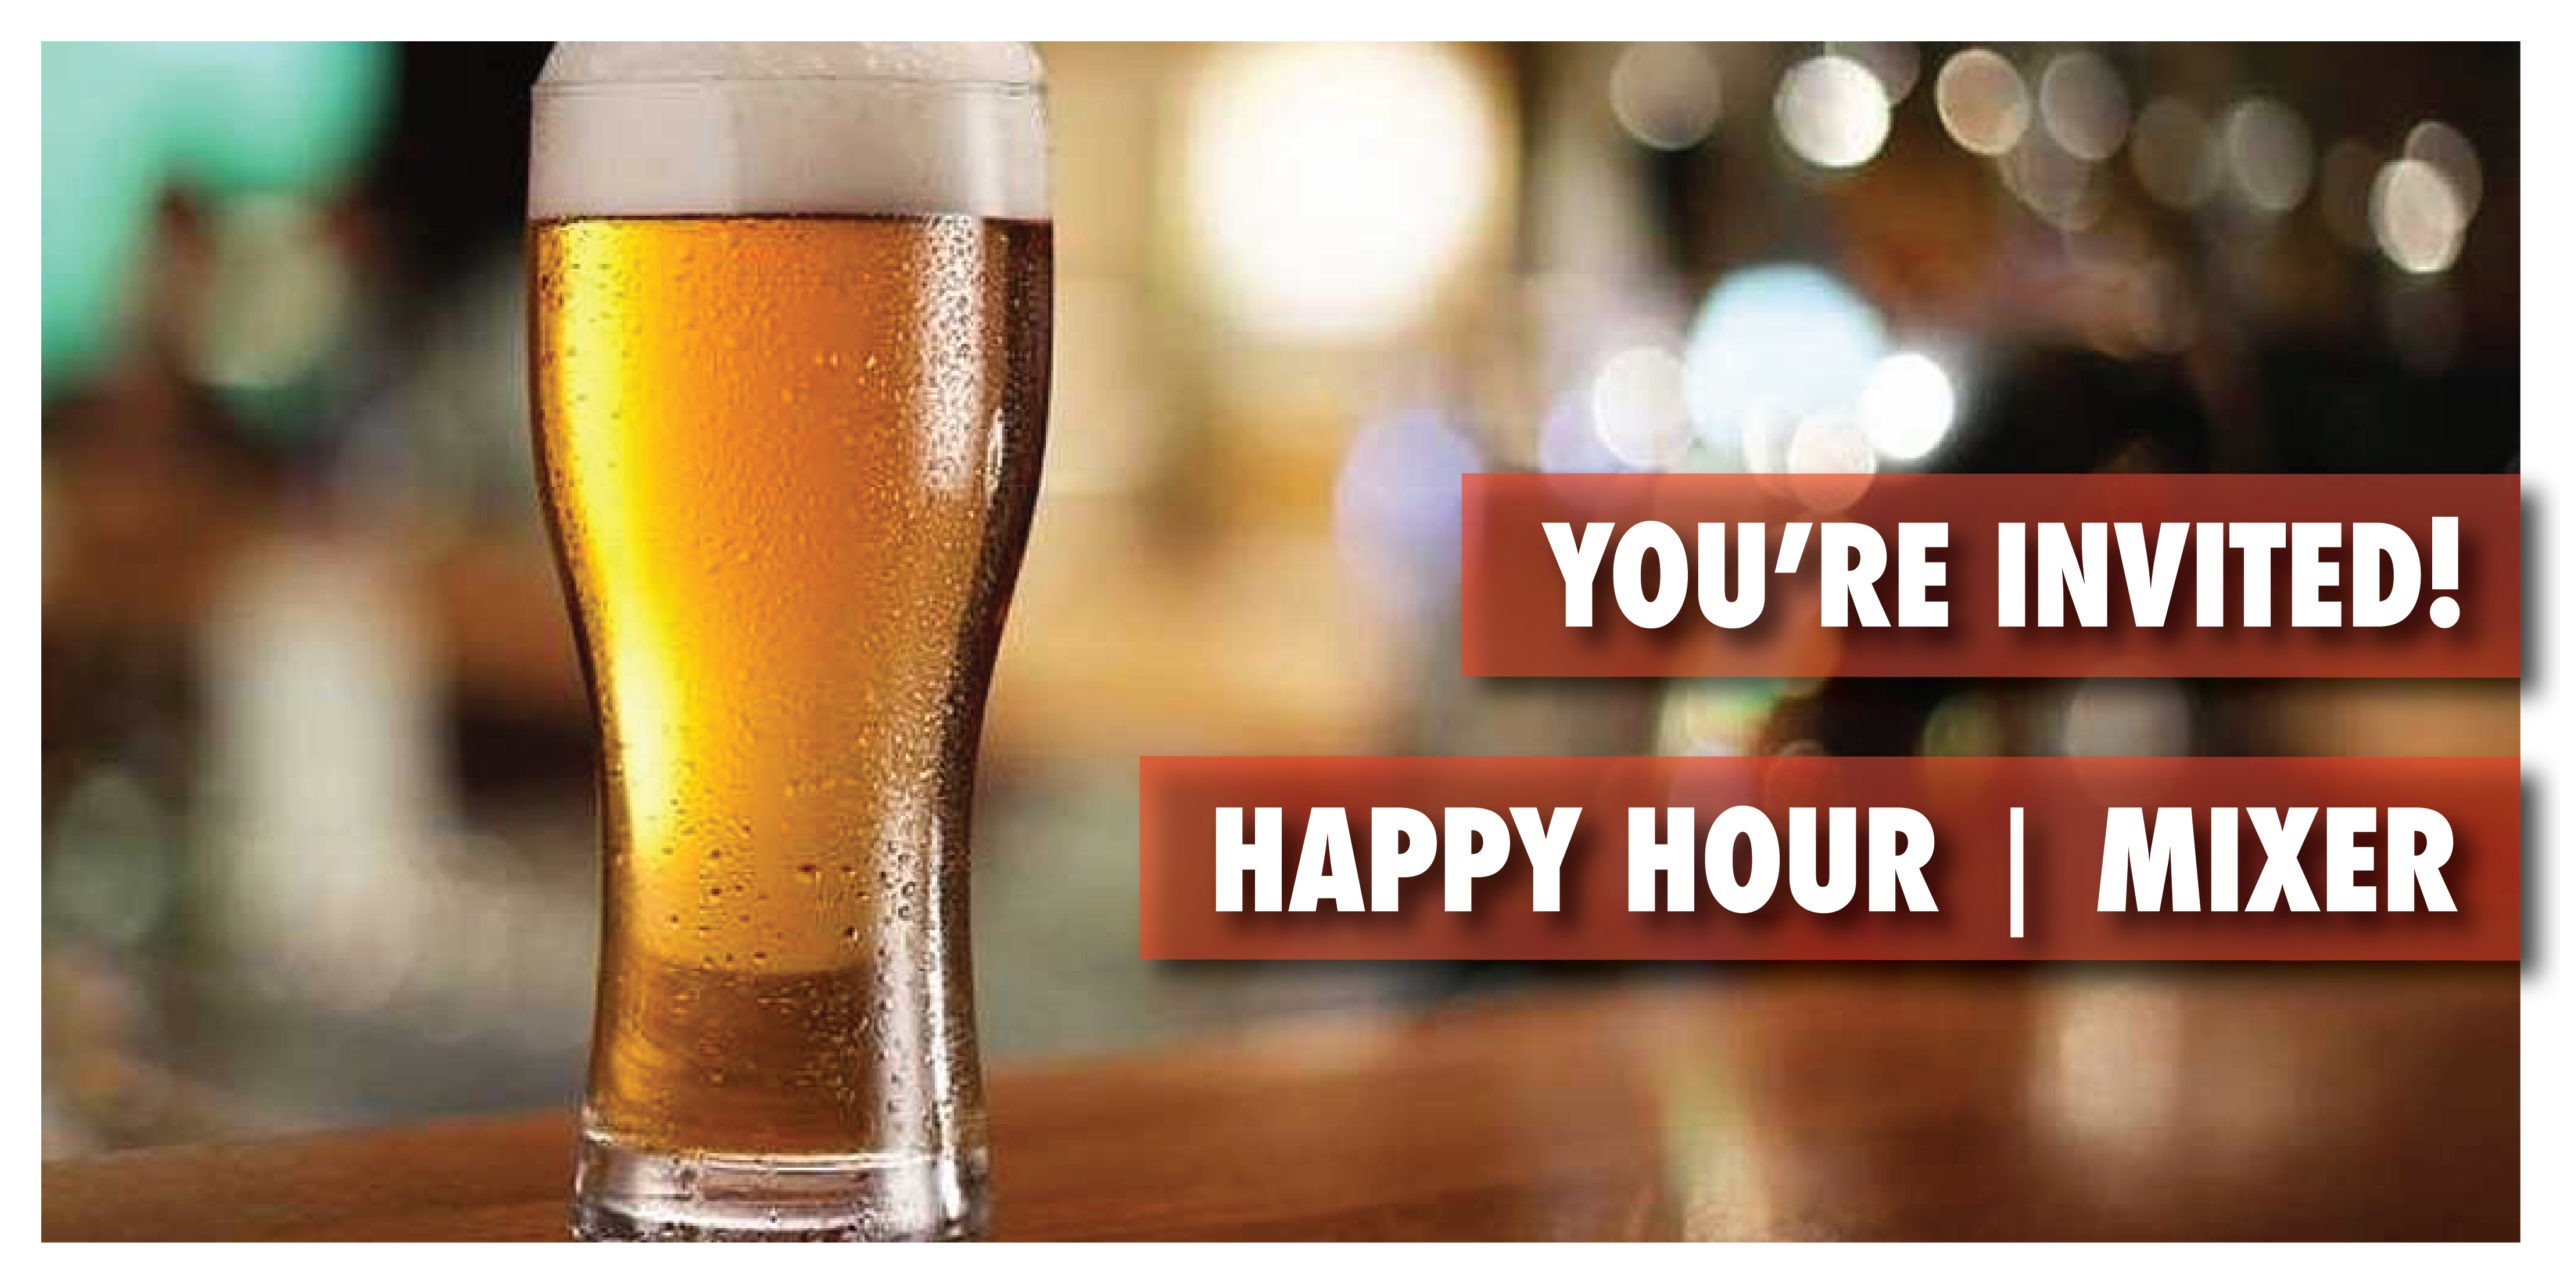 HAPPY hour mixer flyer_image only-01